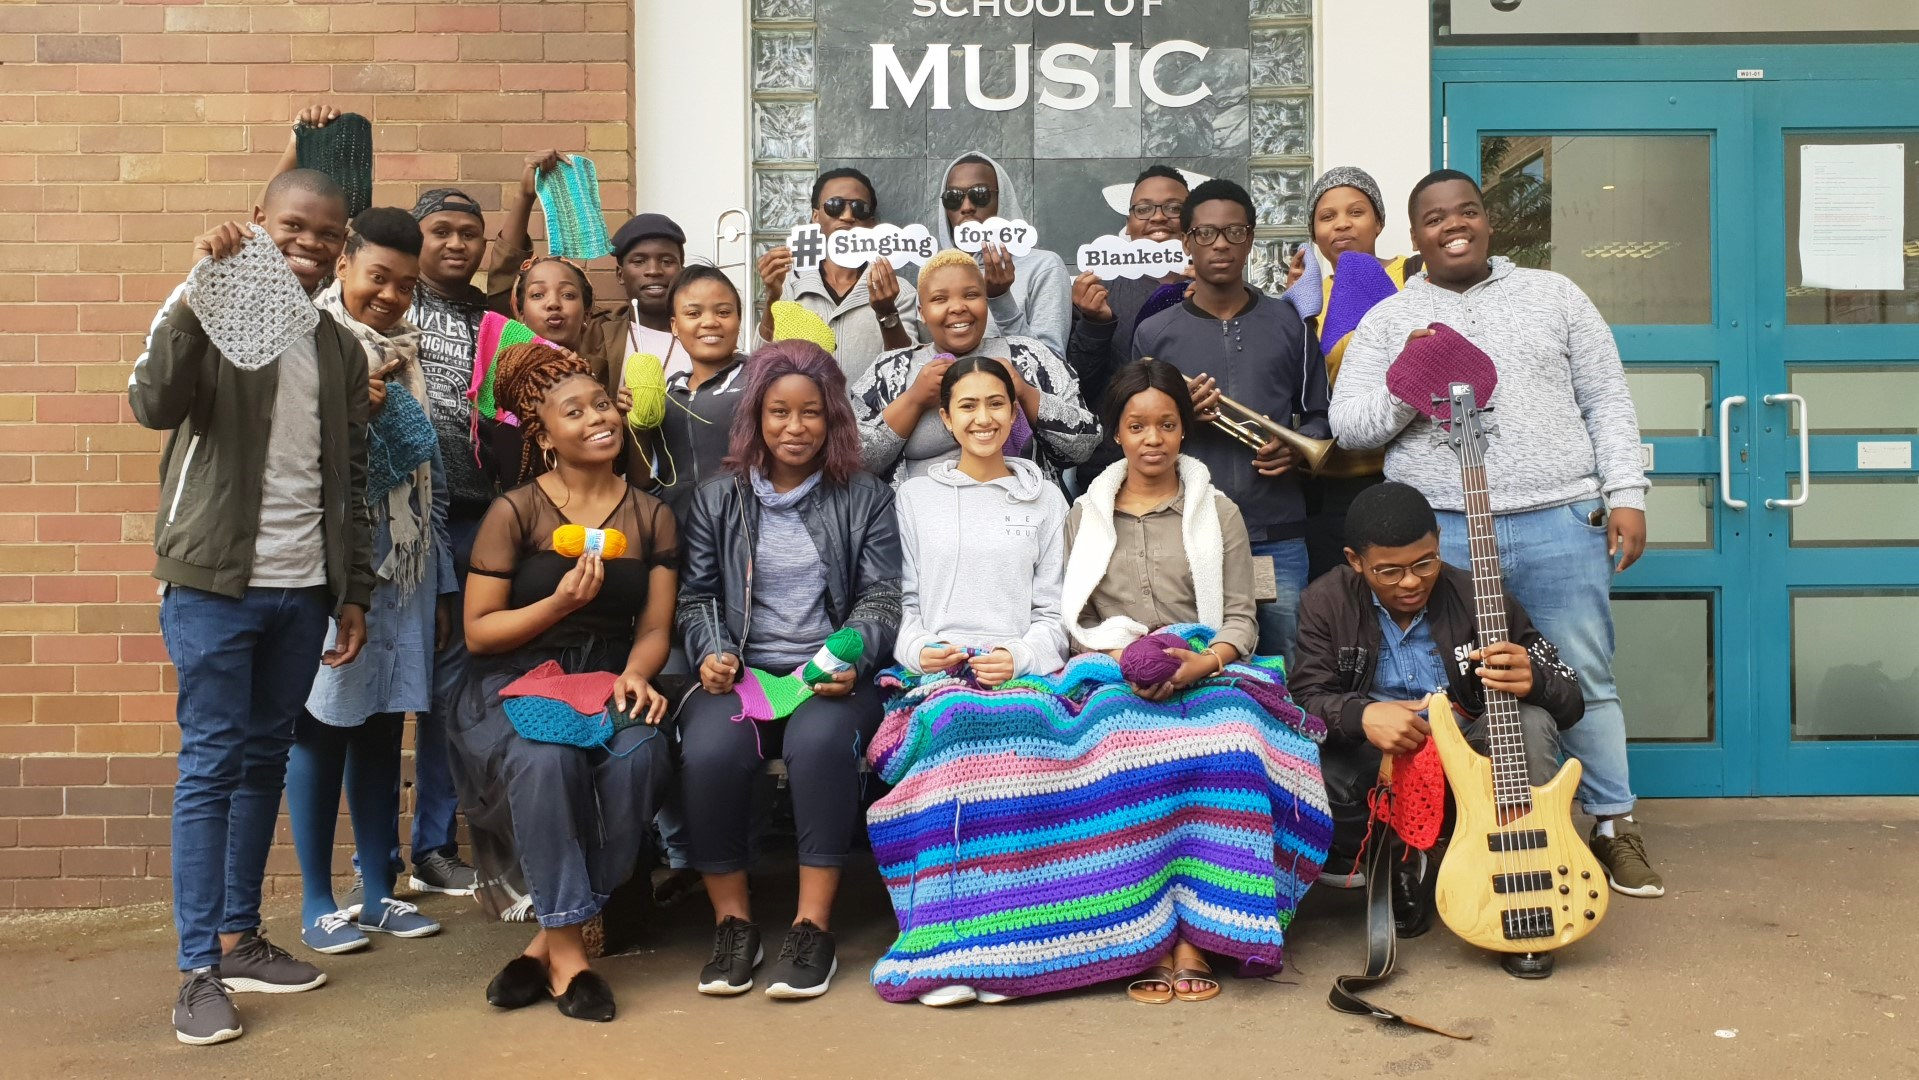 UKZN School of Arts hosts 'Singing for 67 Blankets' concert